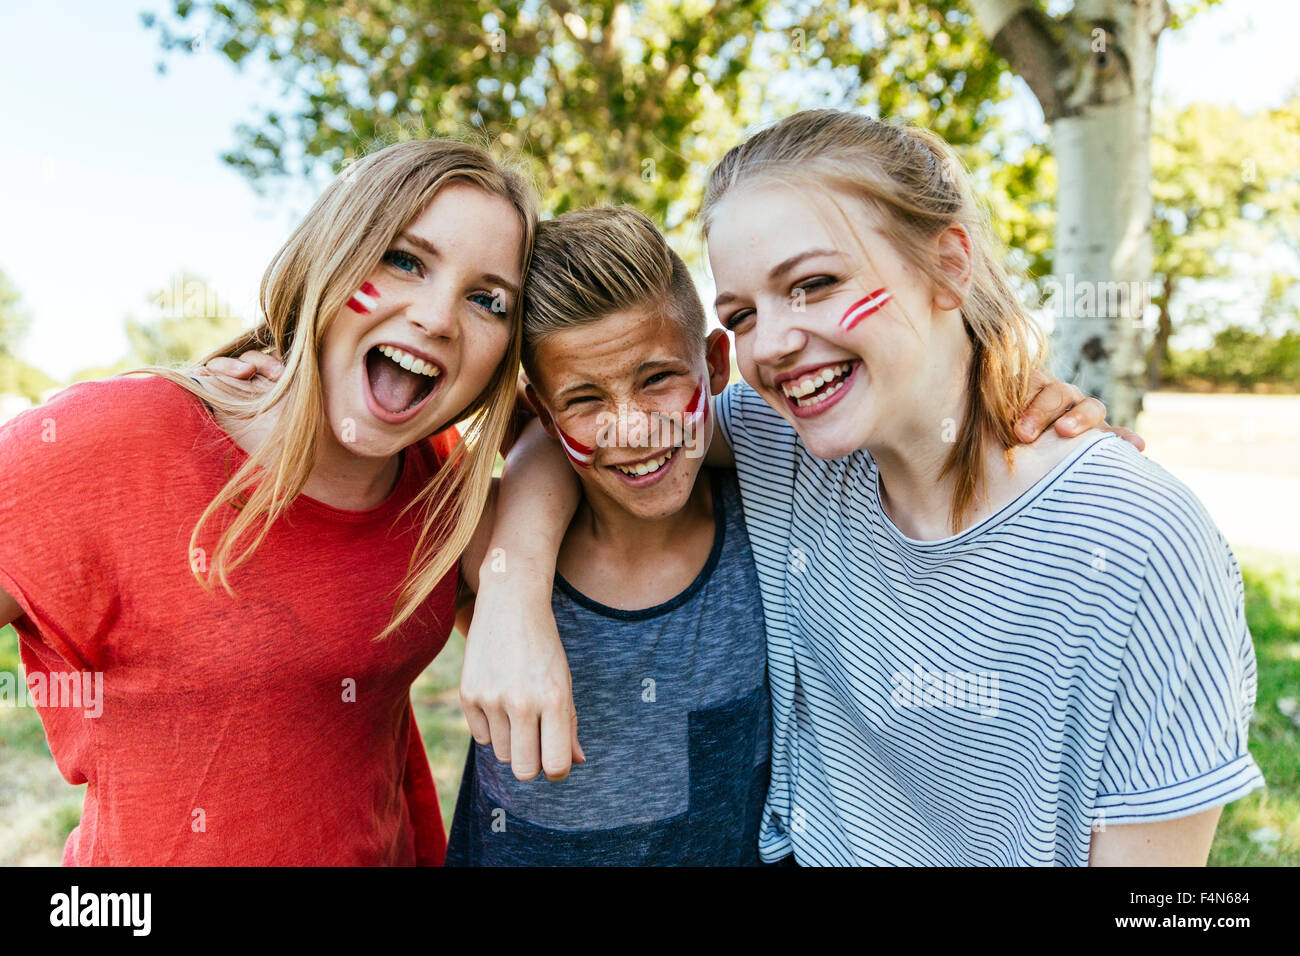 Austria, three teenagers with national colors painted on their cheeks celebrating together - Stock Image